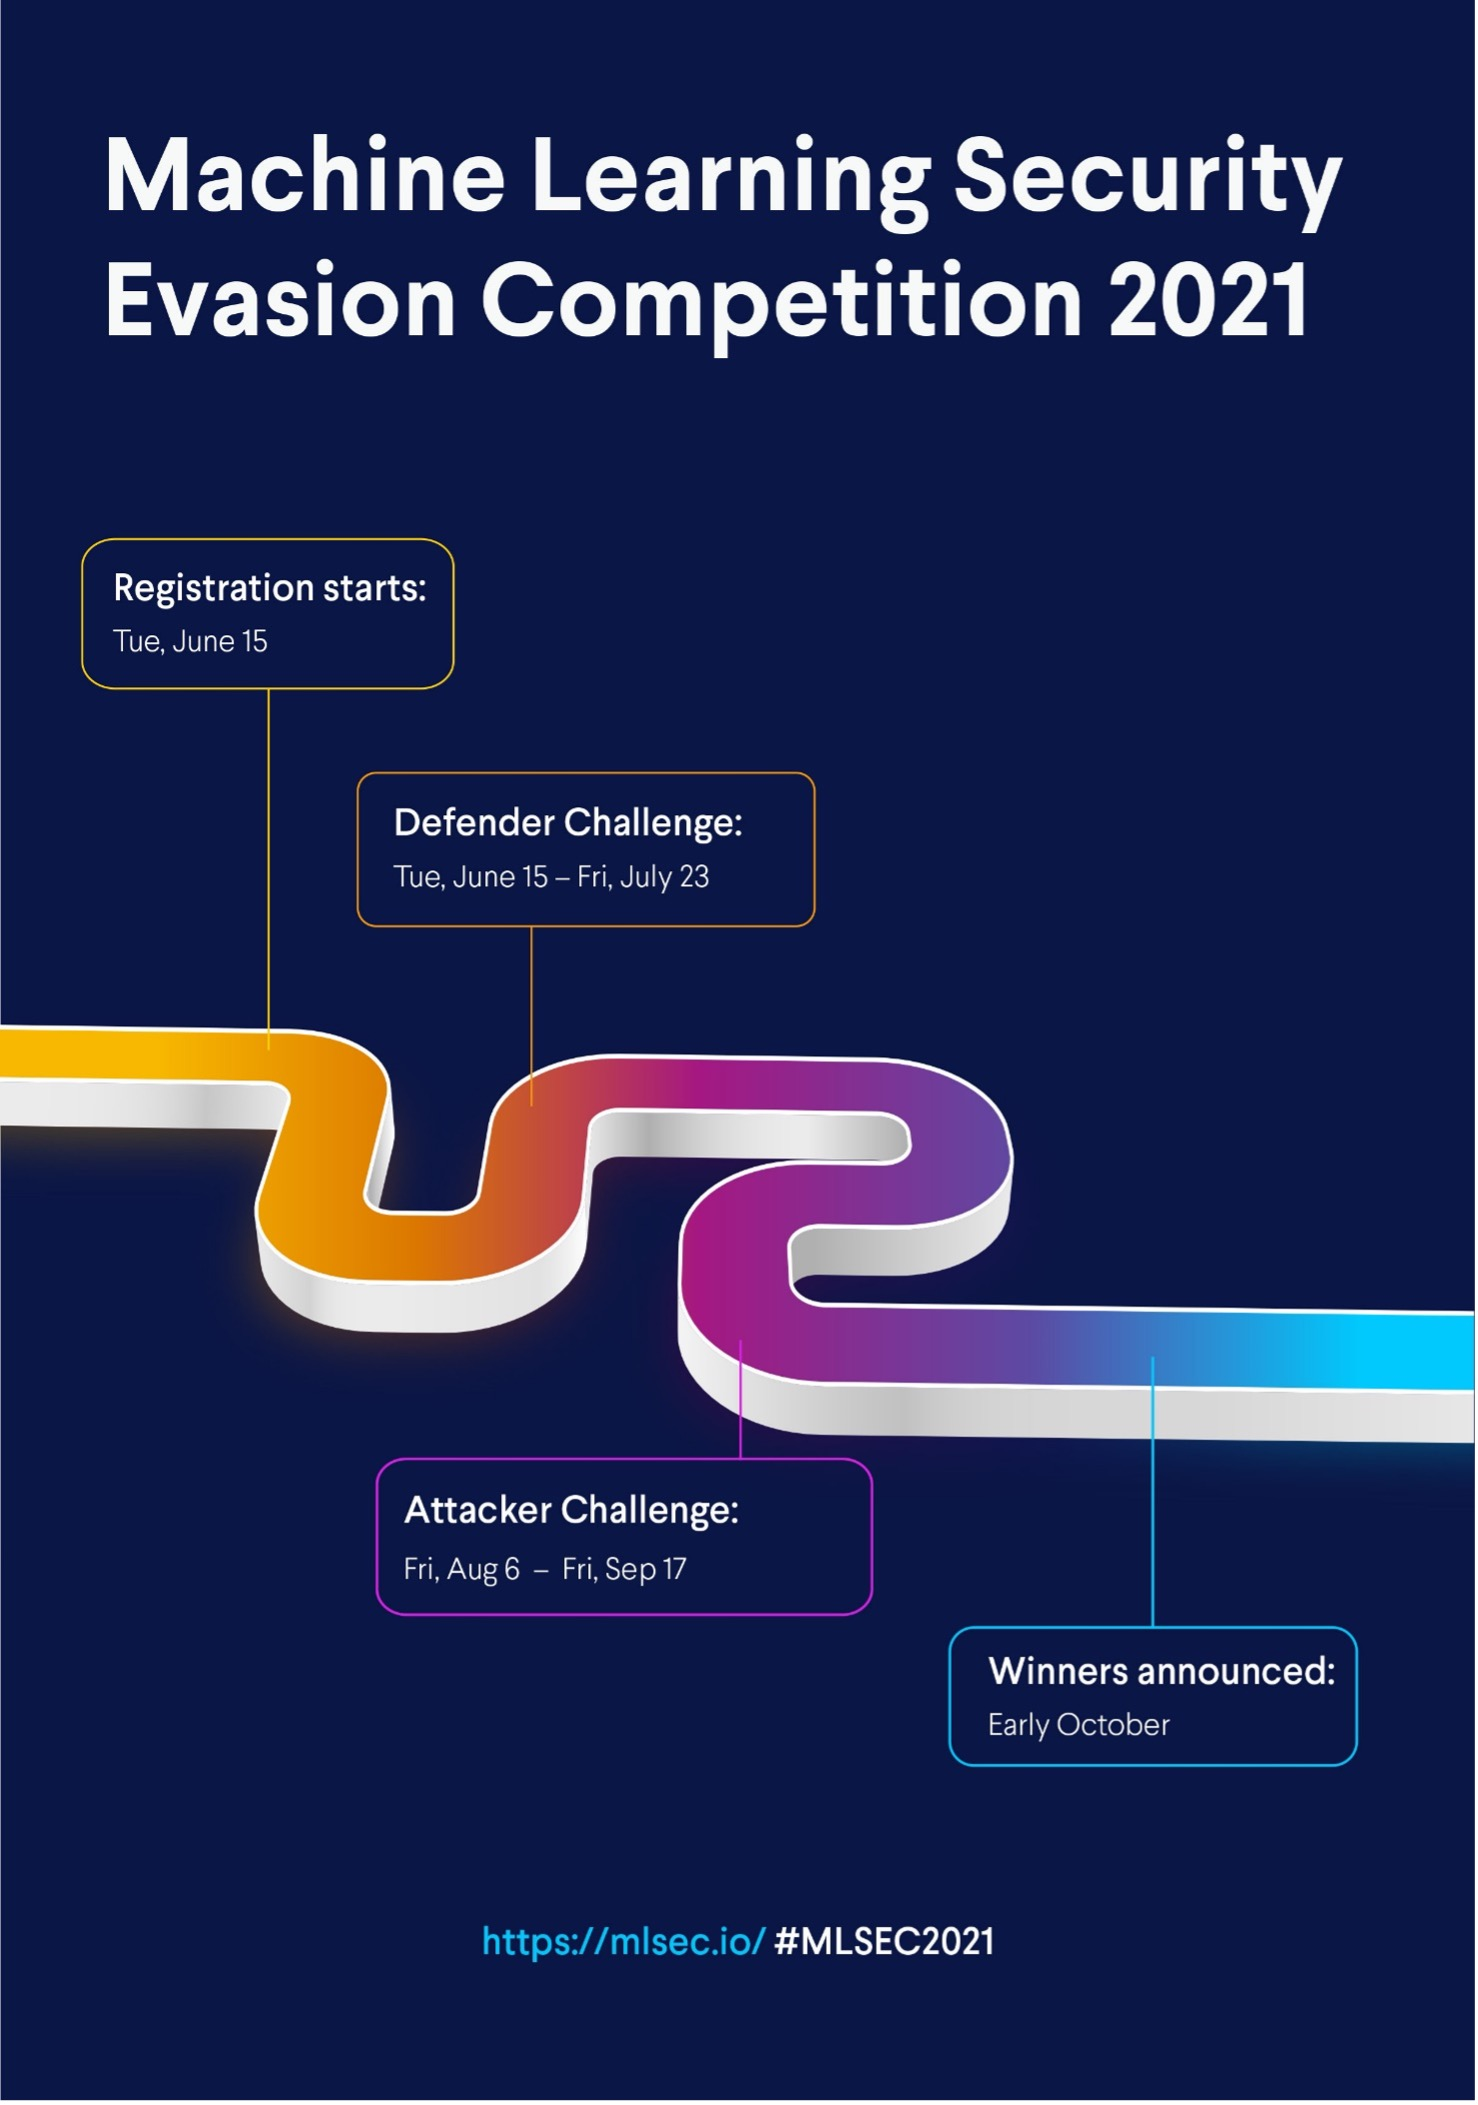 Timeline of the Machine Learning Security Evasion Competition 2021